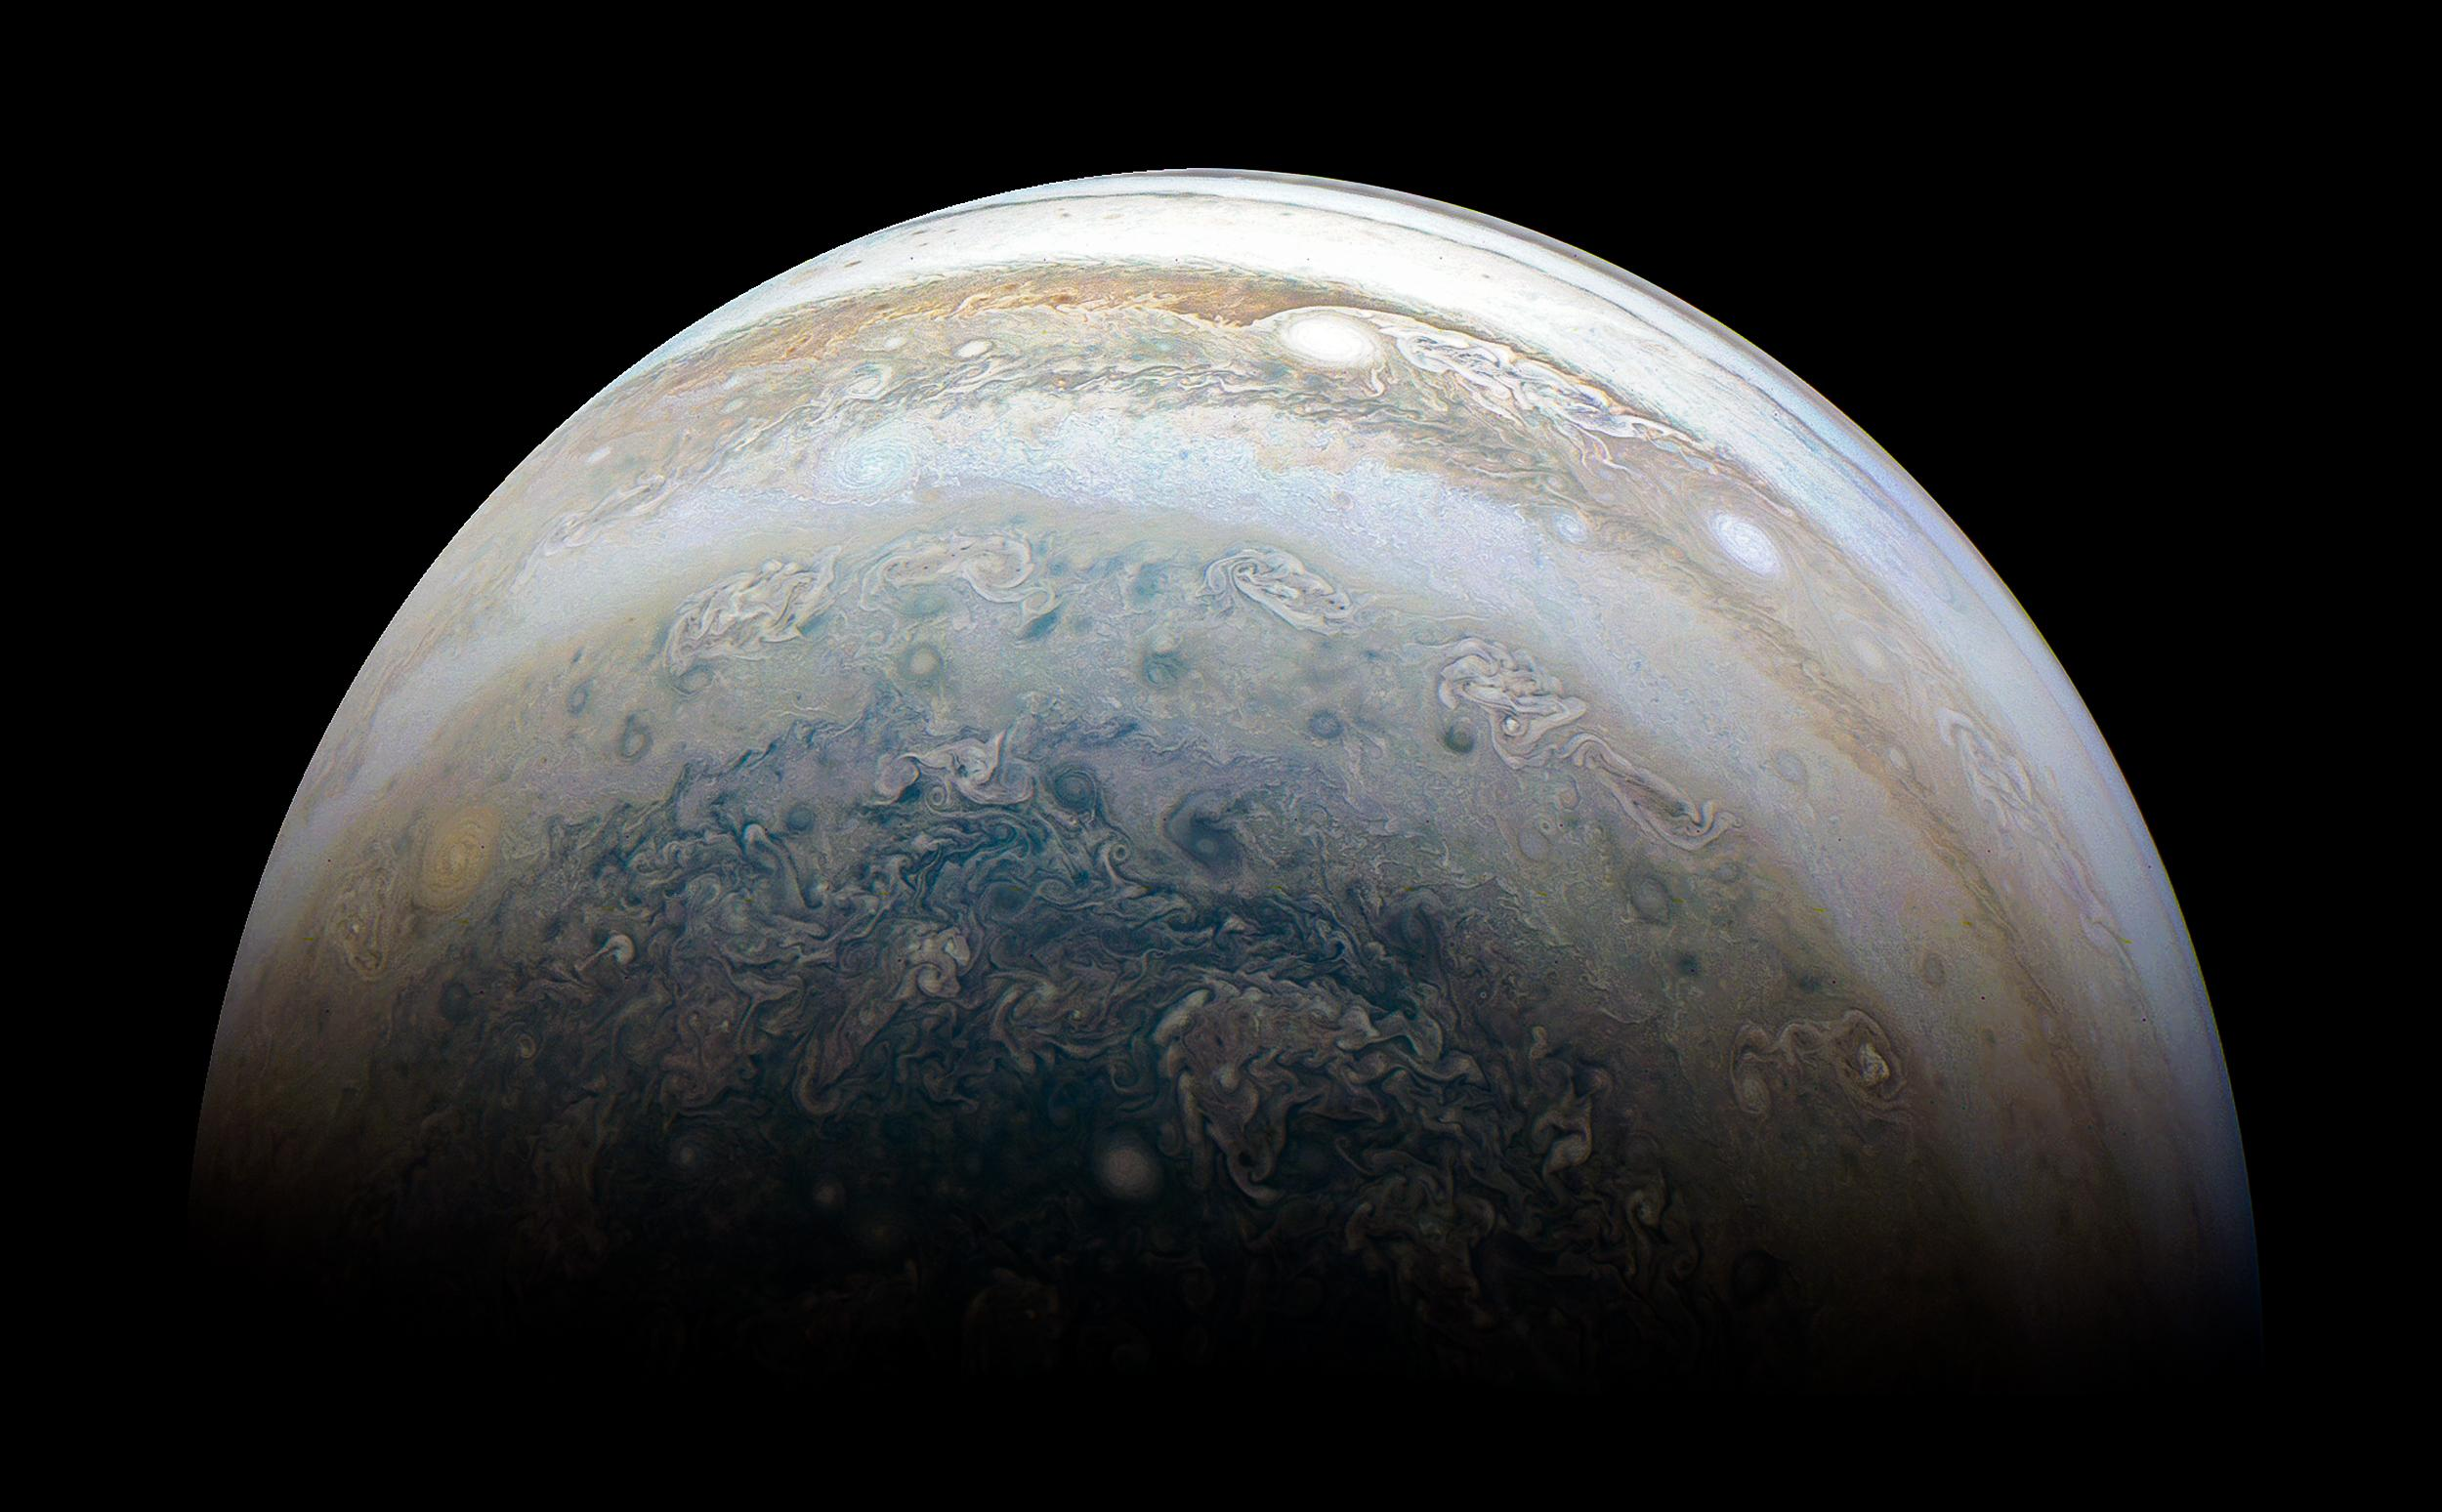 Image of Jupiter's surface taken by the Juno spacecraft.